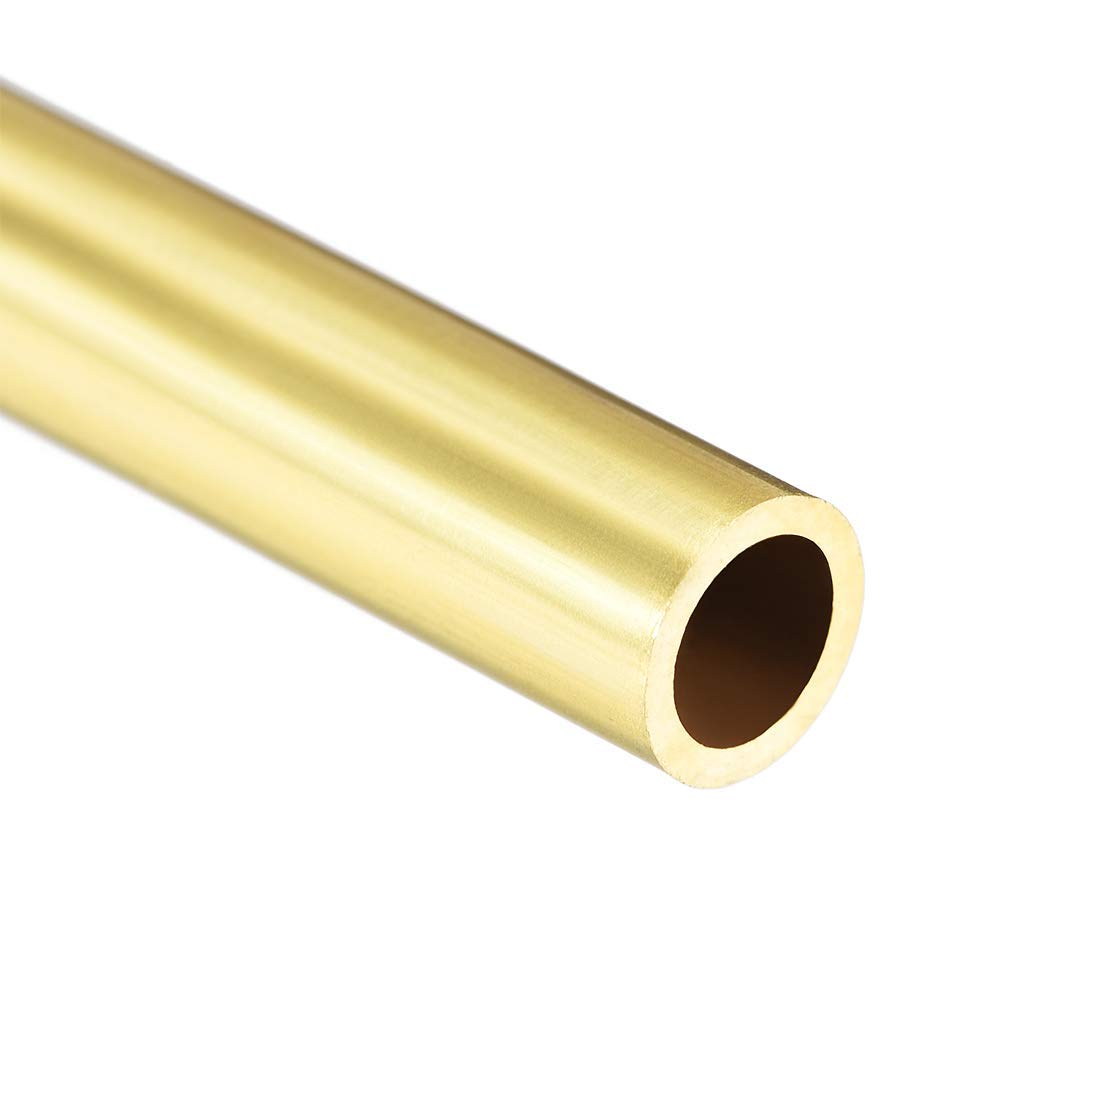 Round Brass Tube 300 mm Length 7 mm OD 1 mm Wall Thickness Seamless Straight Pipe Tube